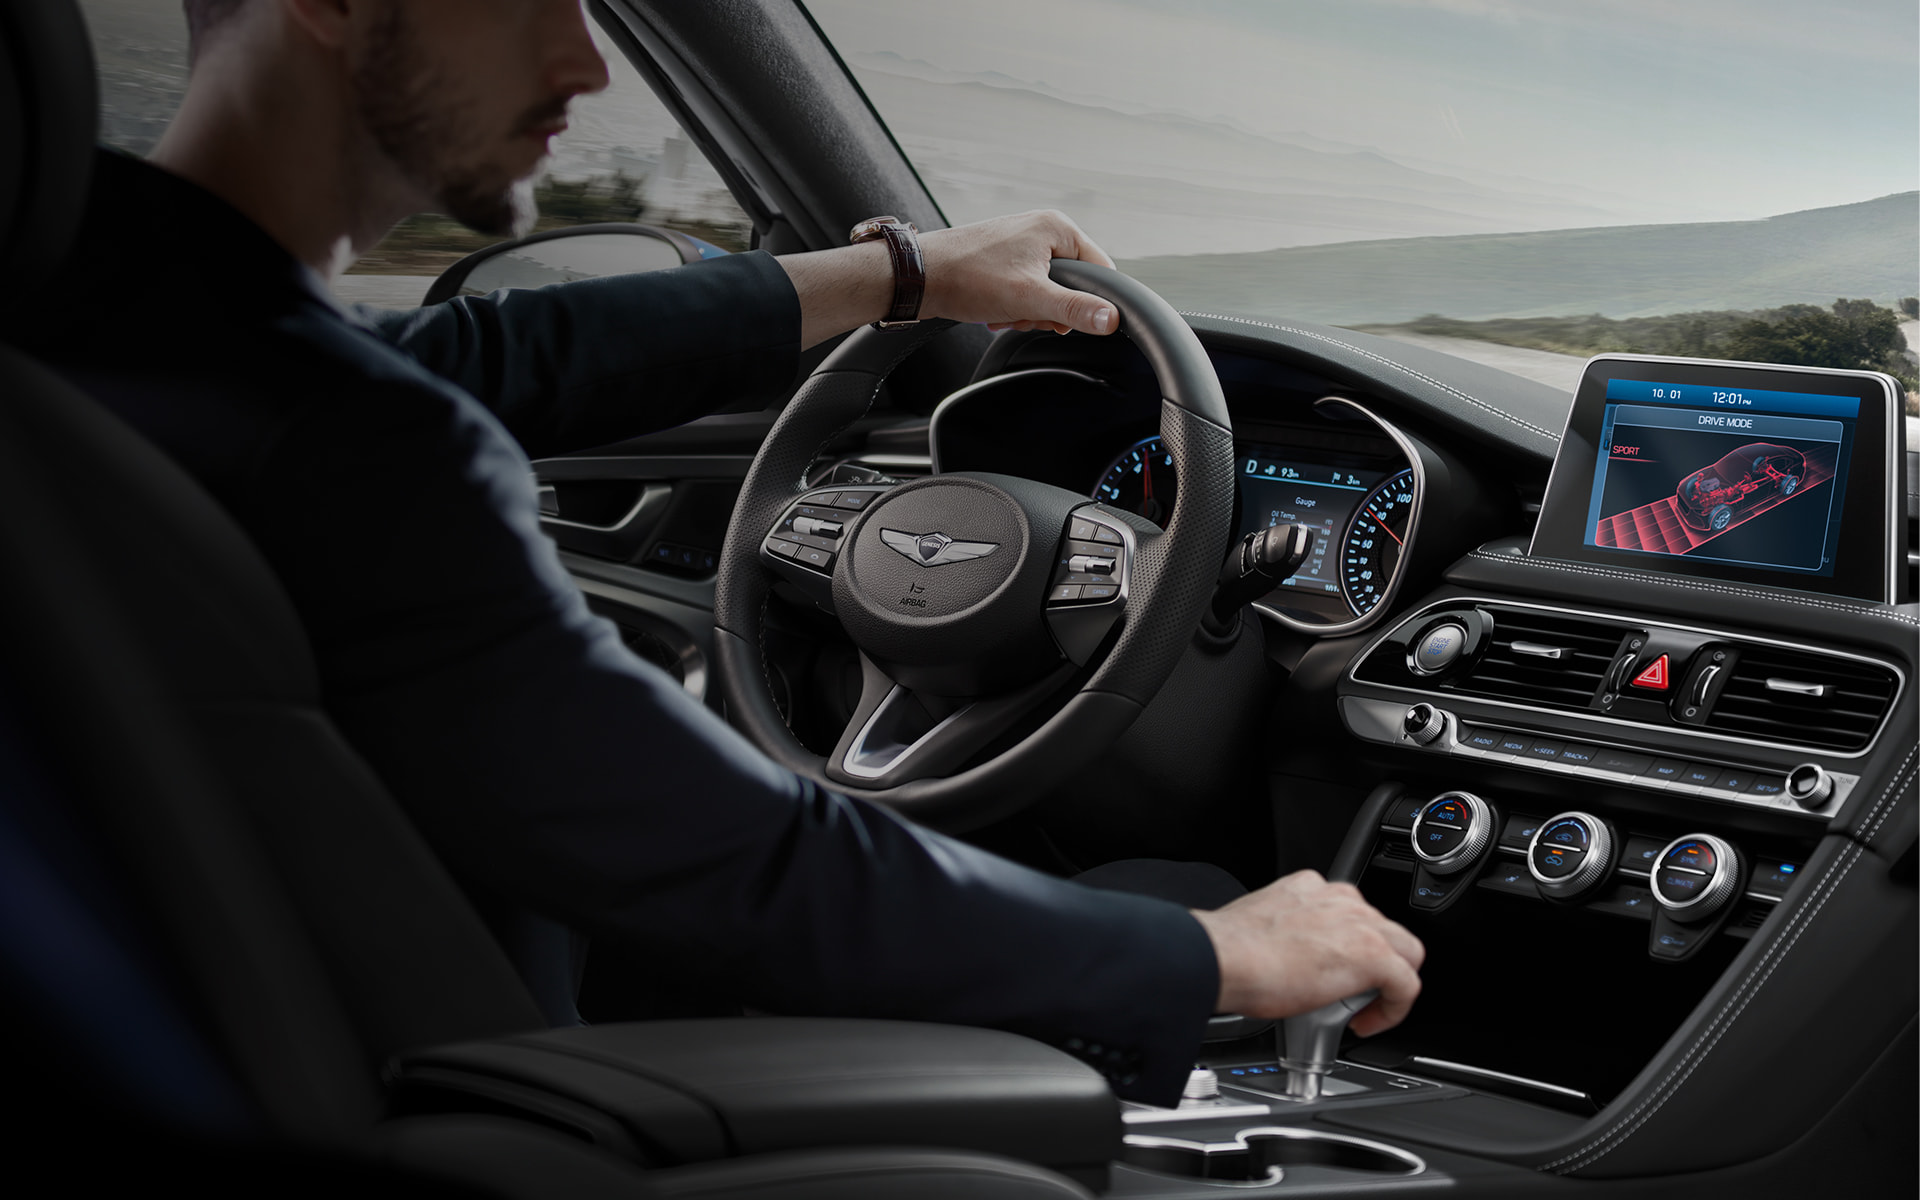 GENESIS G70 Technology Features - BALANCED PERFORMANCE